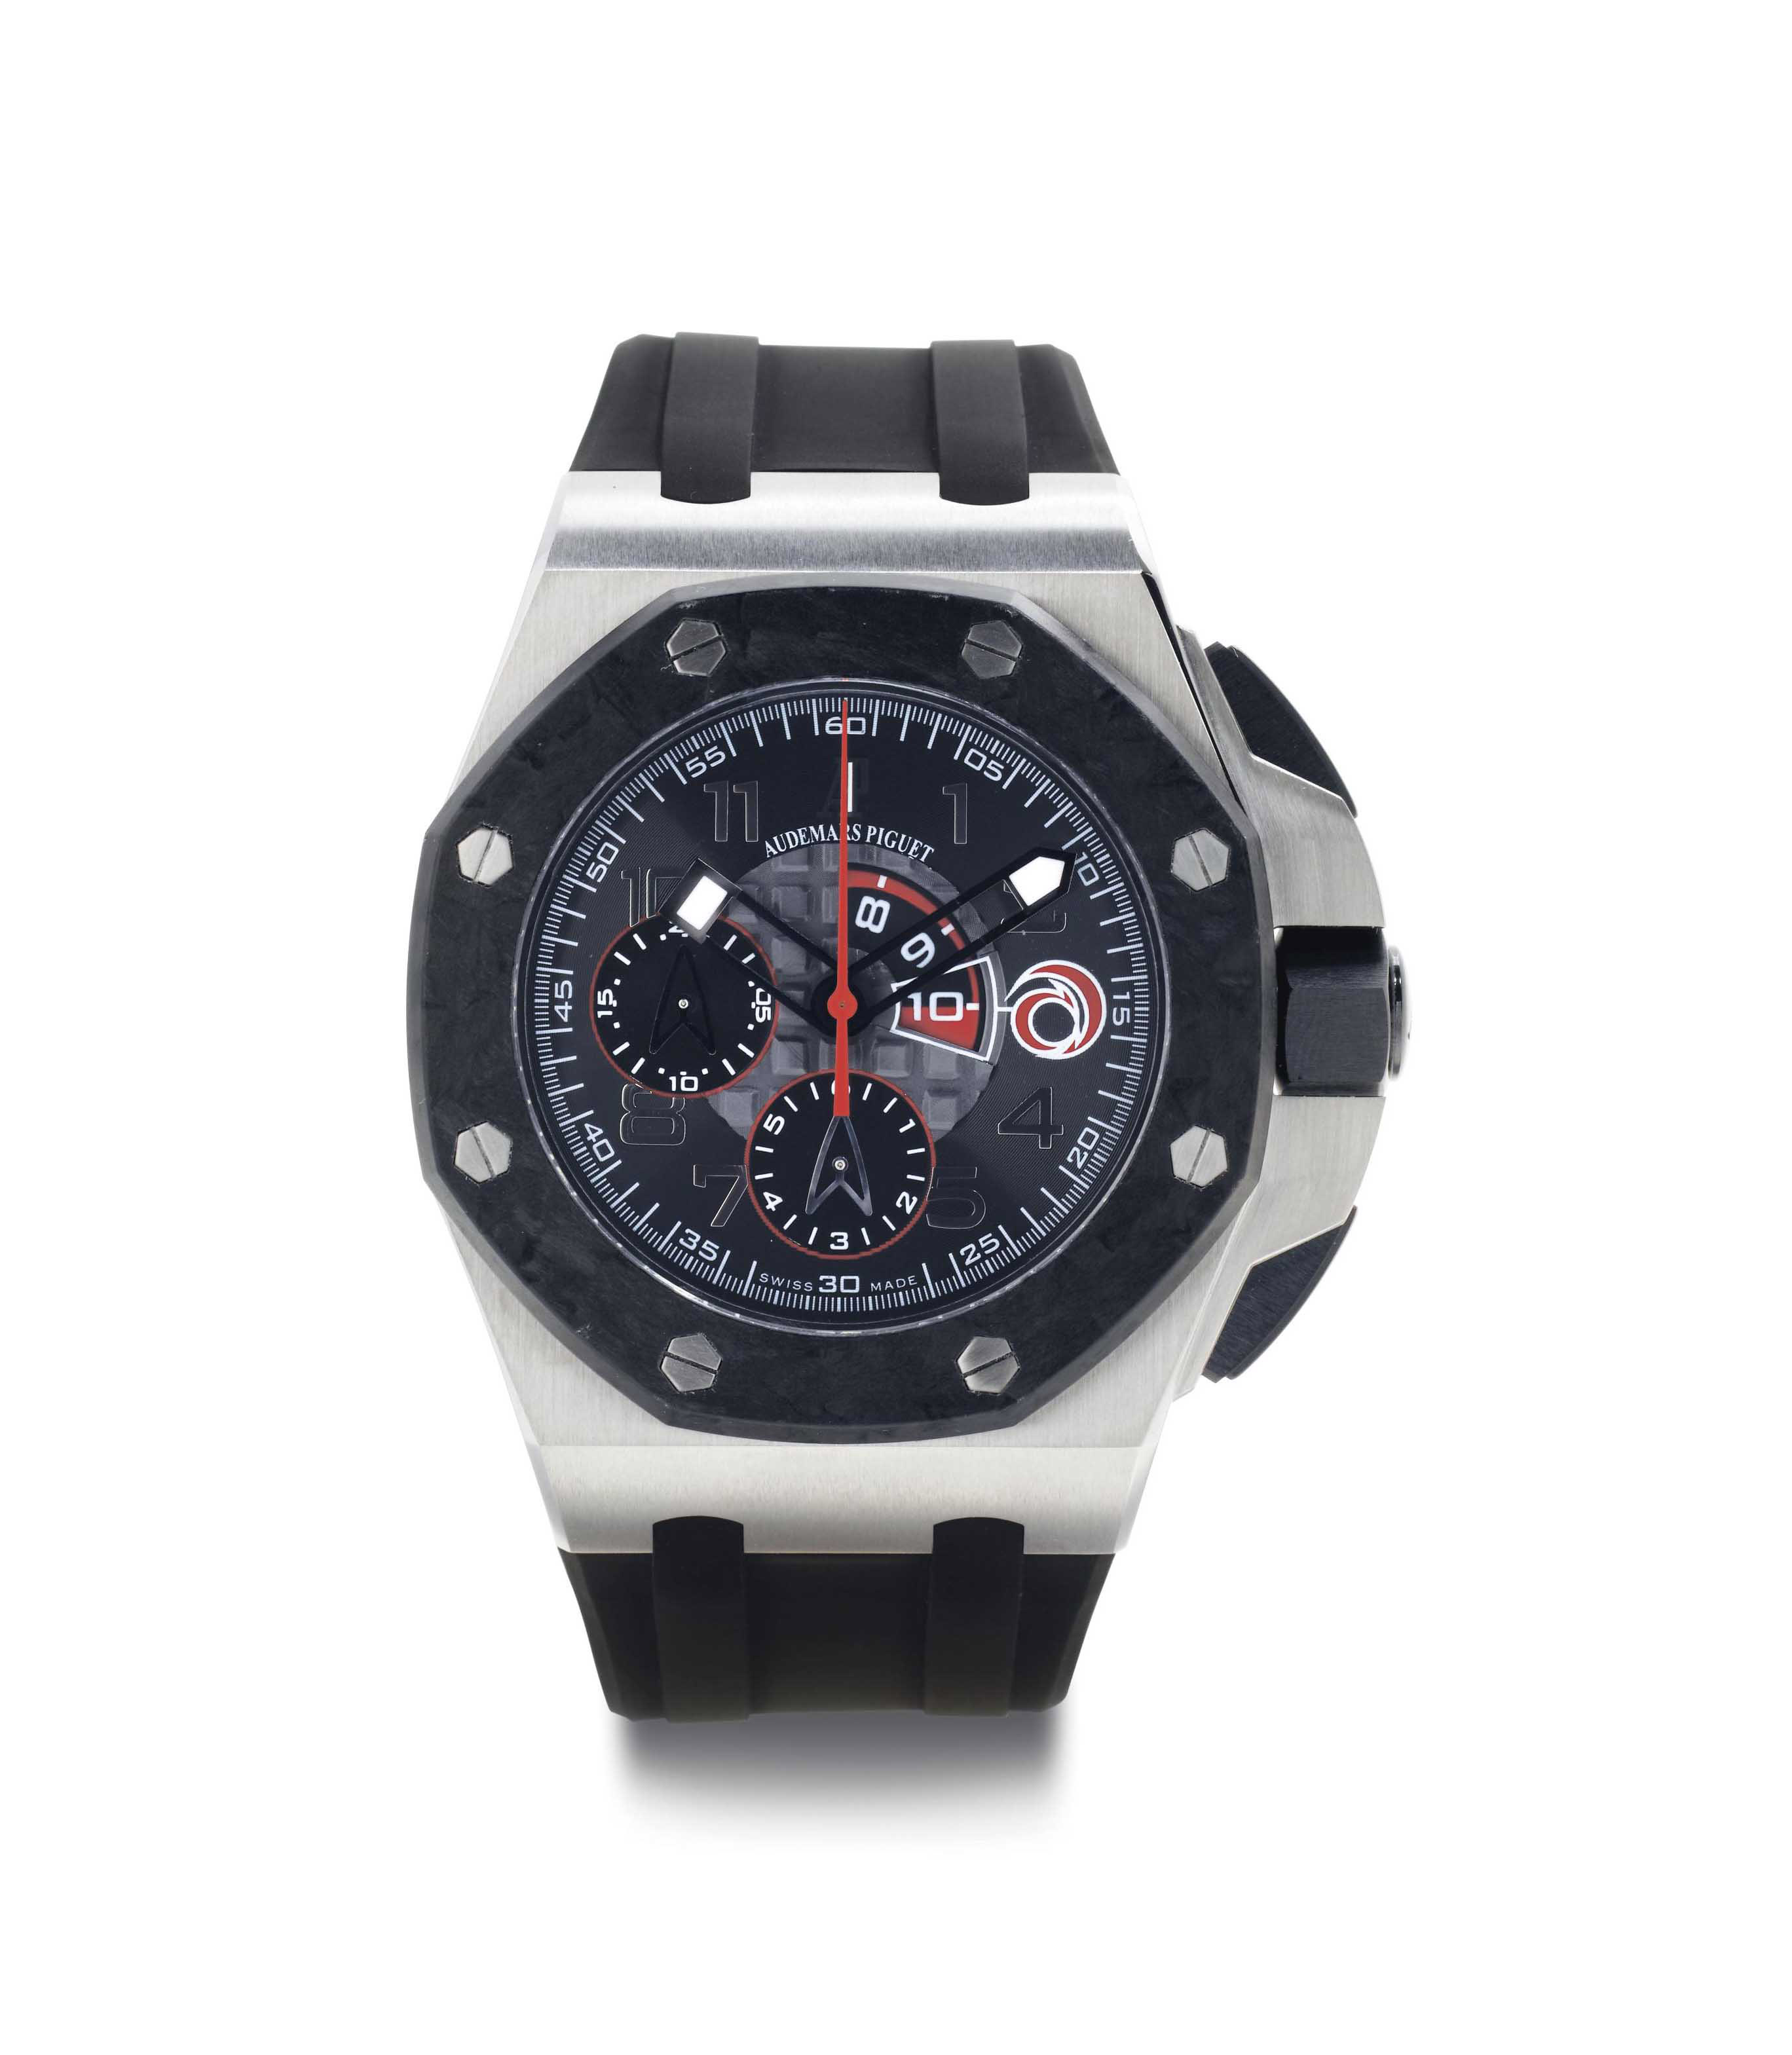 Audemars Piguet. A Limited Edition Platinum And Carbon Automatic Chronograph Wristwatch With Regatta Countdown Indication